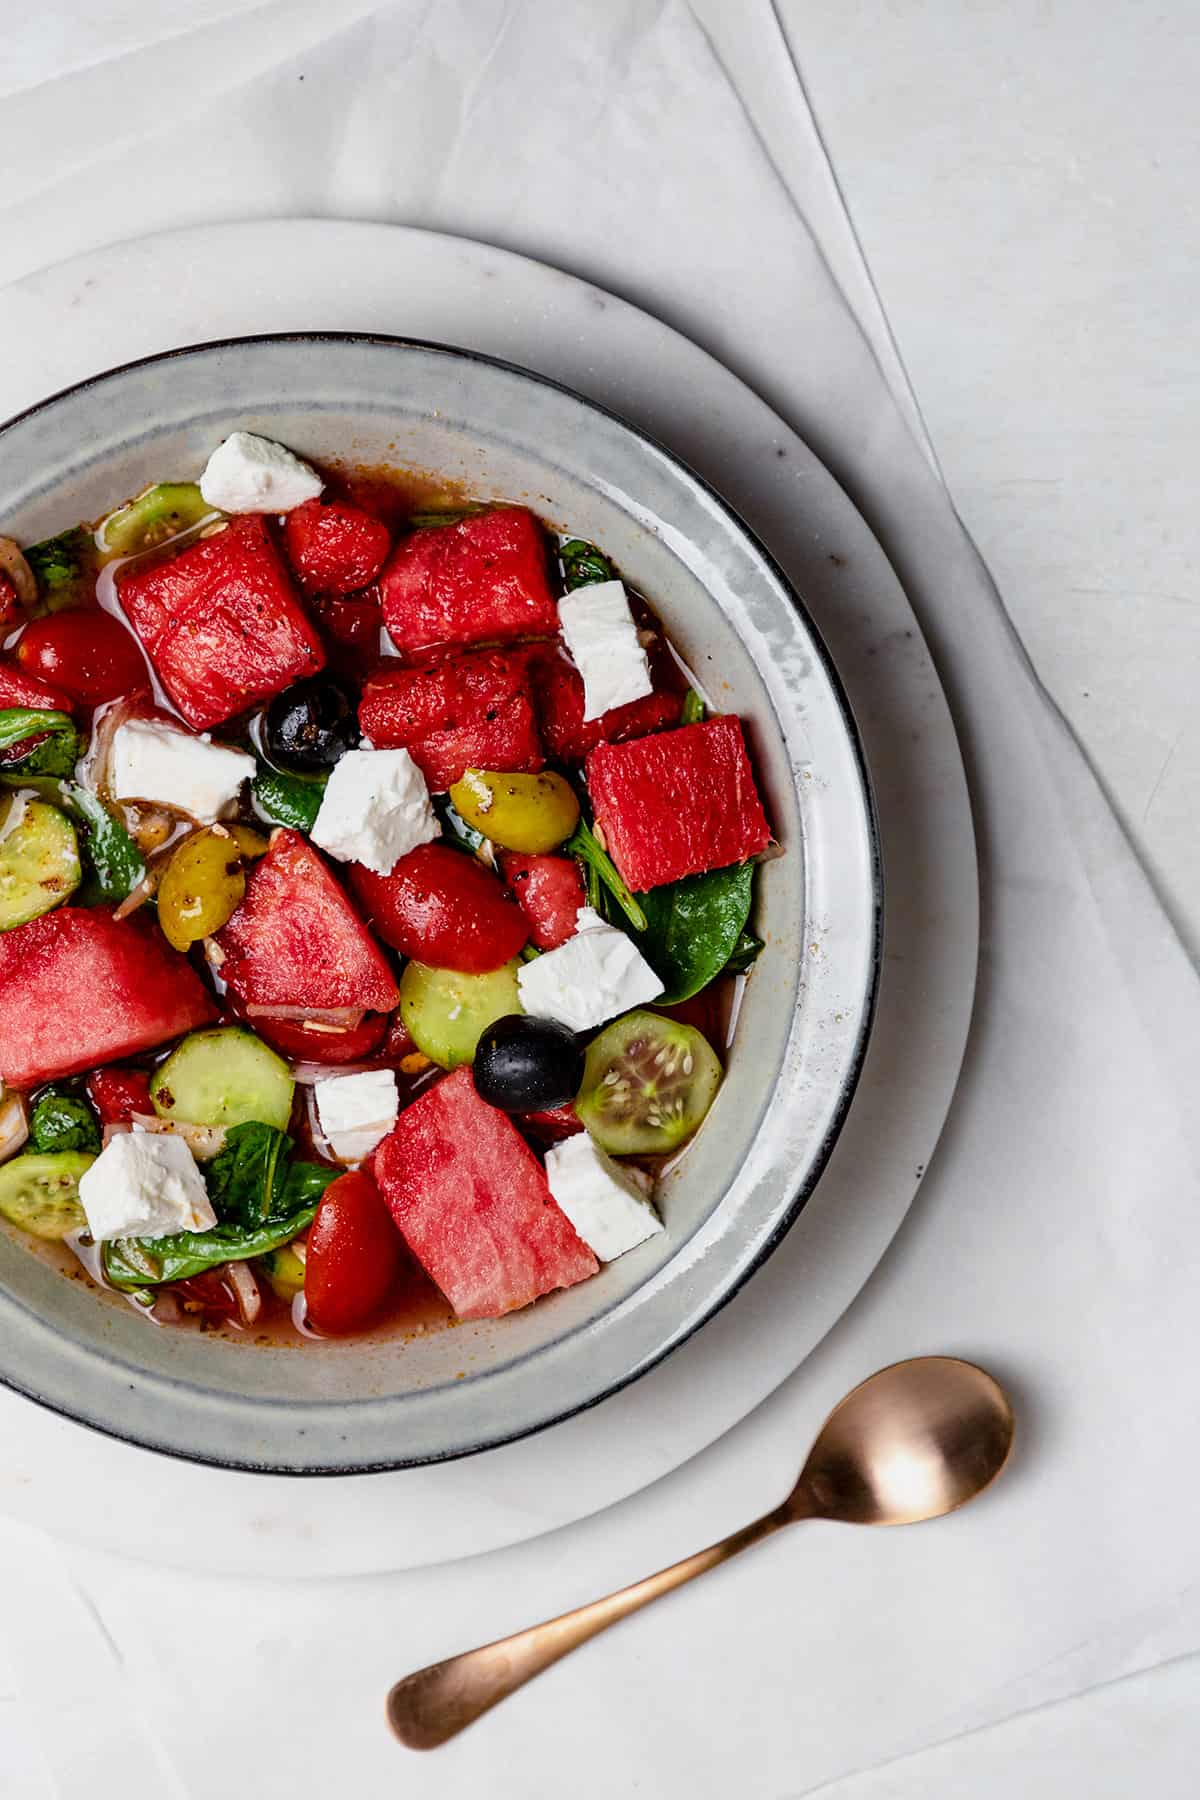 watermelon goat cheese salad in a gray bowl.